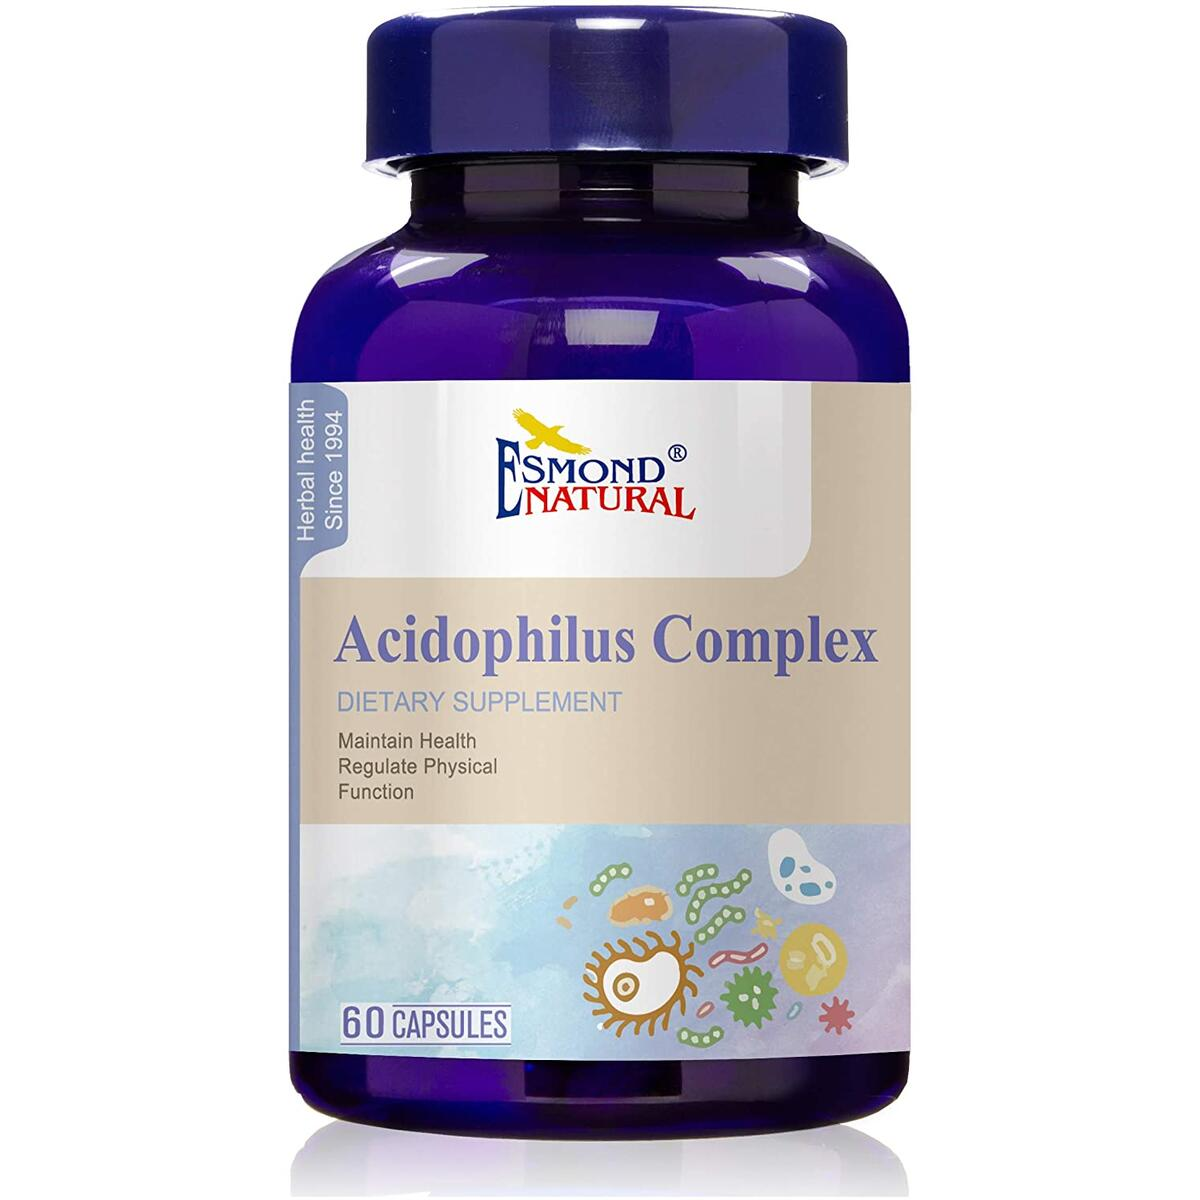 (3 Count, 10% Off) Esmond Natural: Acidophilus Complex (Supports Gastro-Intestinal Health & Physical Functions), GMP, Natural Product Assn Certified, Made in USA-13.6mg, 180 Capsules